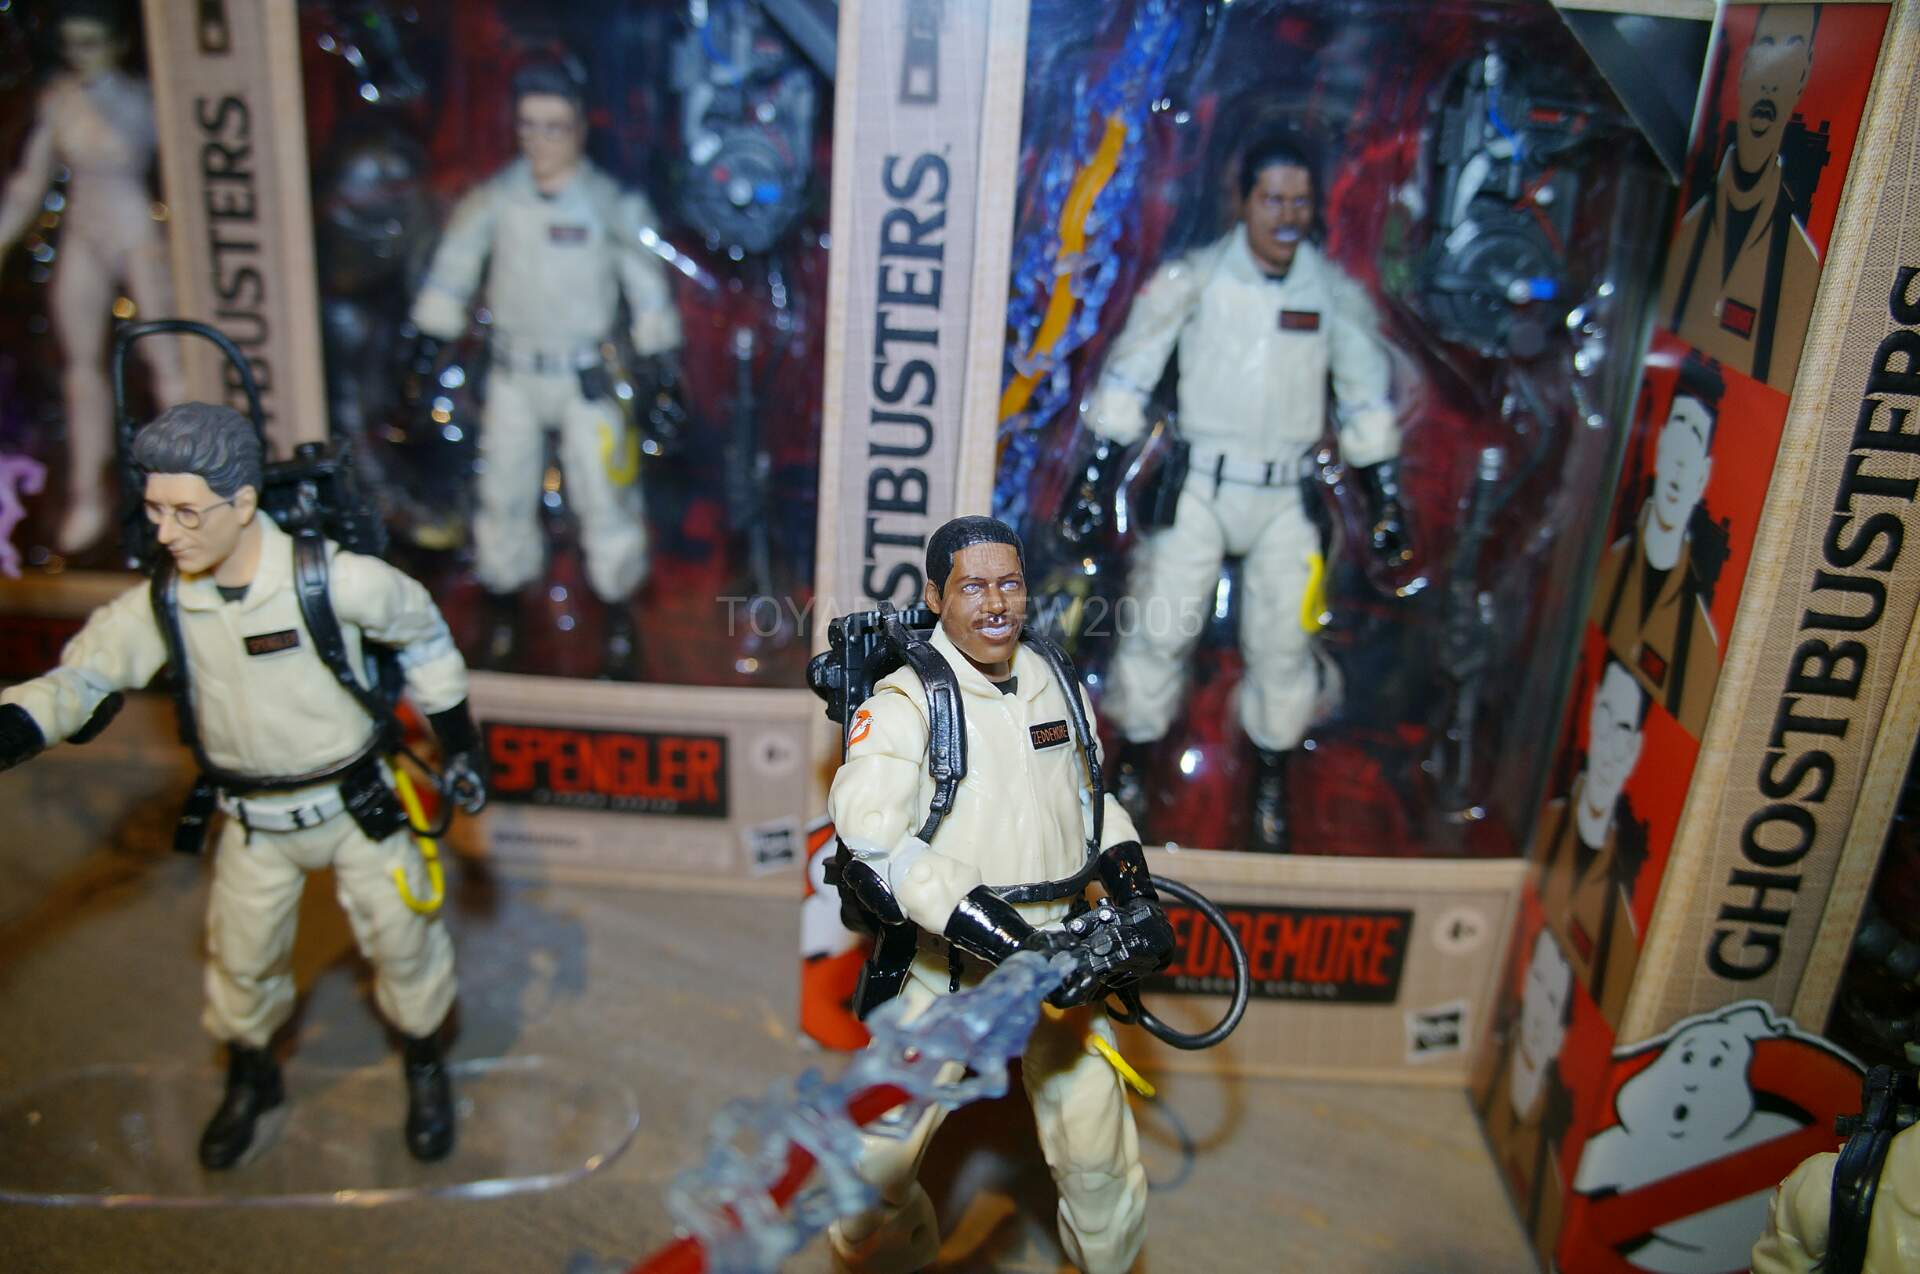 Toy-Fair-2020-Hasbro-Ghostbusters-040.jpg